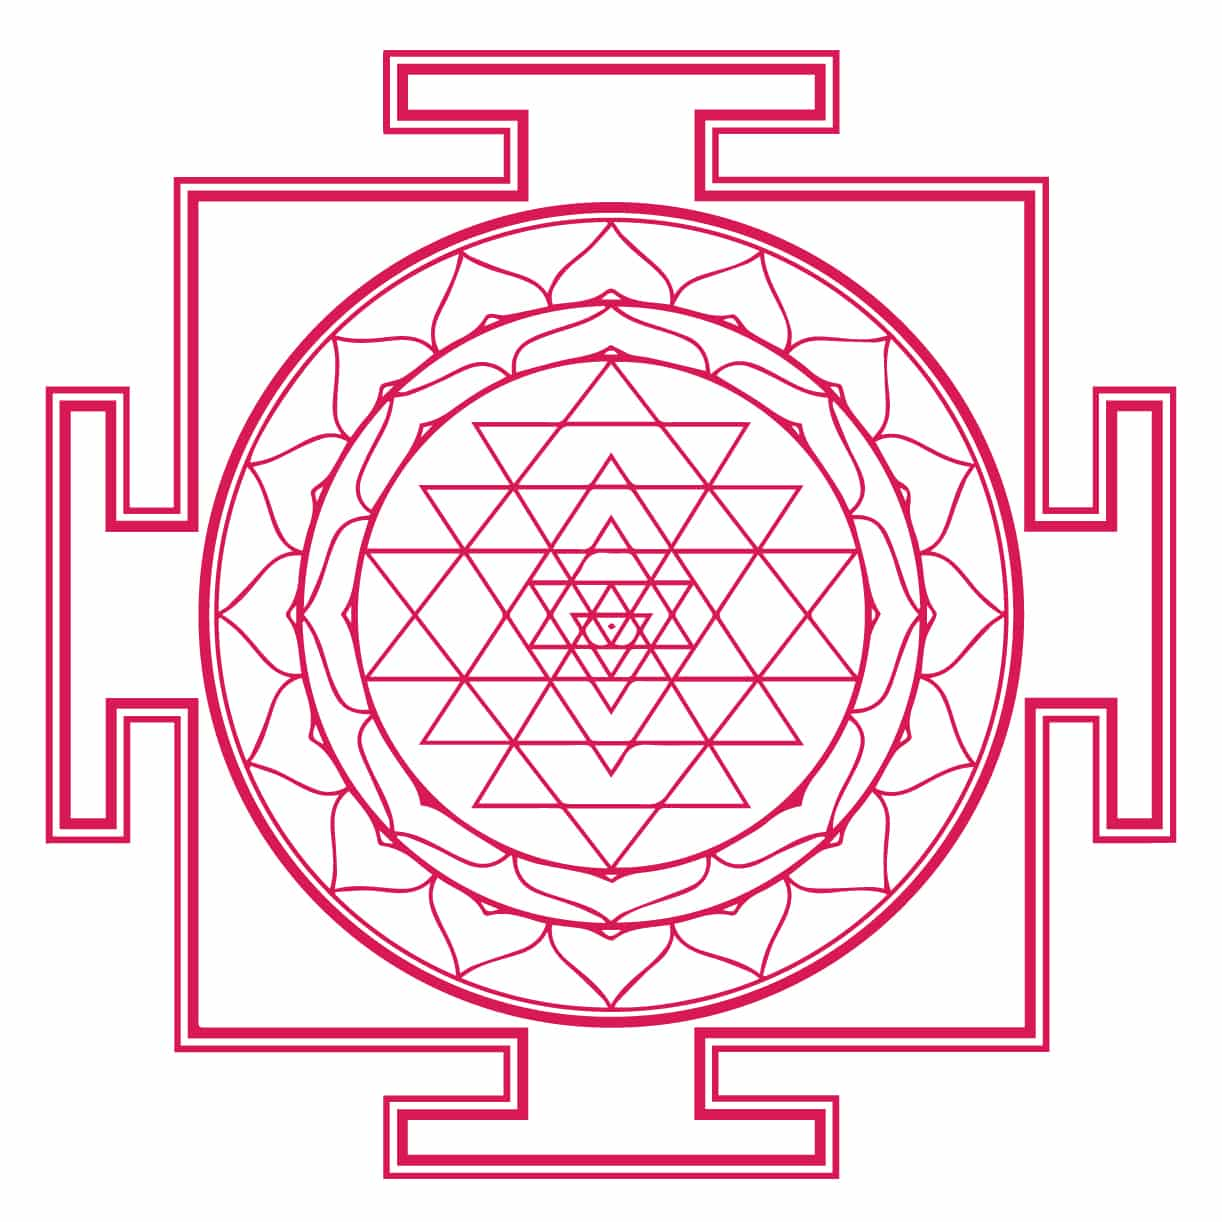 Sri Yantra/Sri Chakra Symbol (Shree Yantra) and Its Meaning